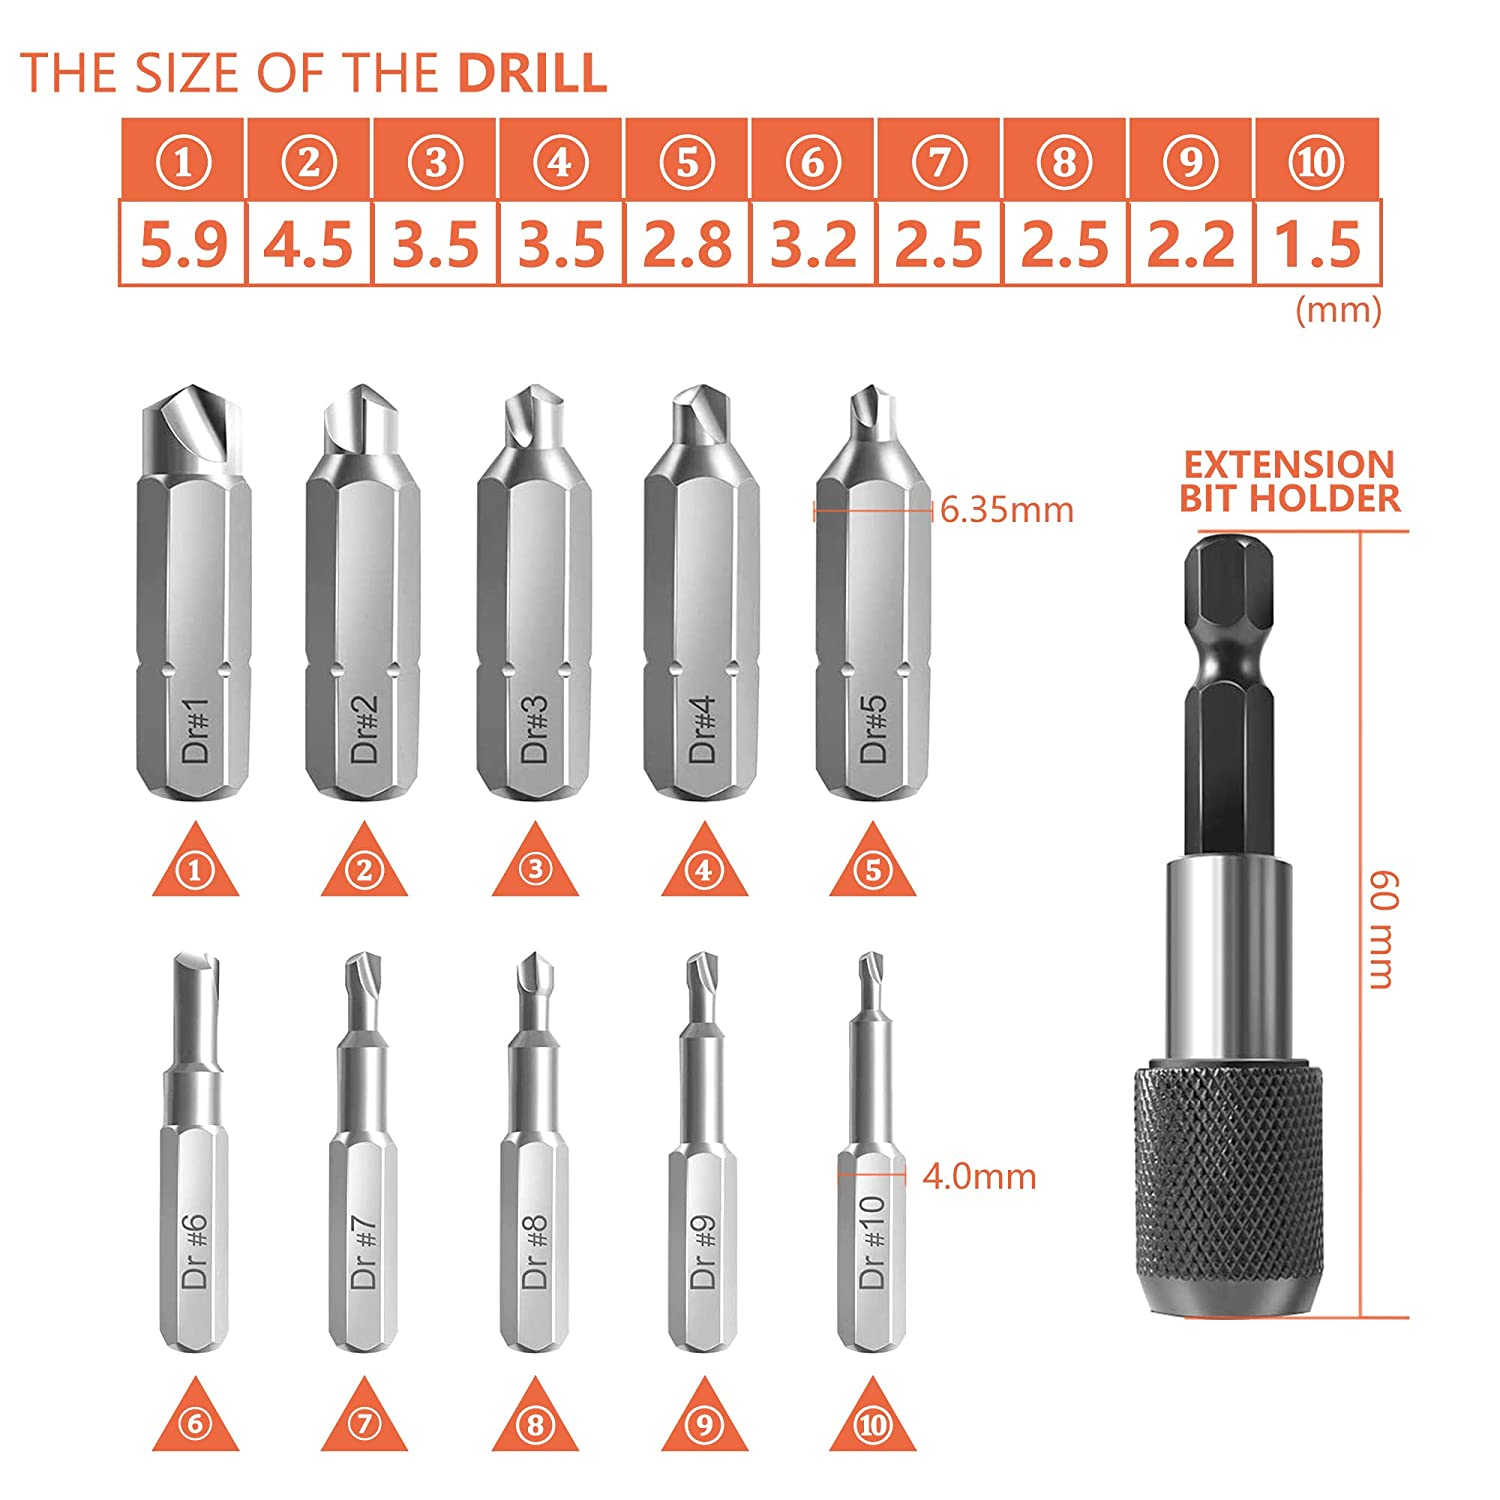 XOOL Screw Extractor Kit 22 Pieces Used for Disconnecting Screws and Bolts Screw Extractor Tool with Magnetic Extension Drill Holder Adapter